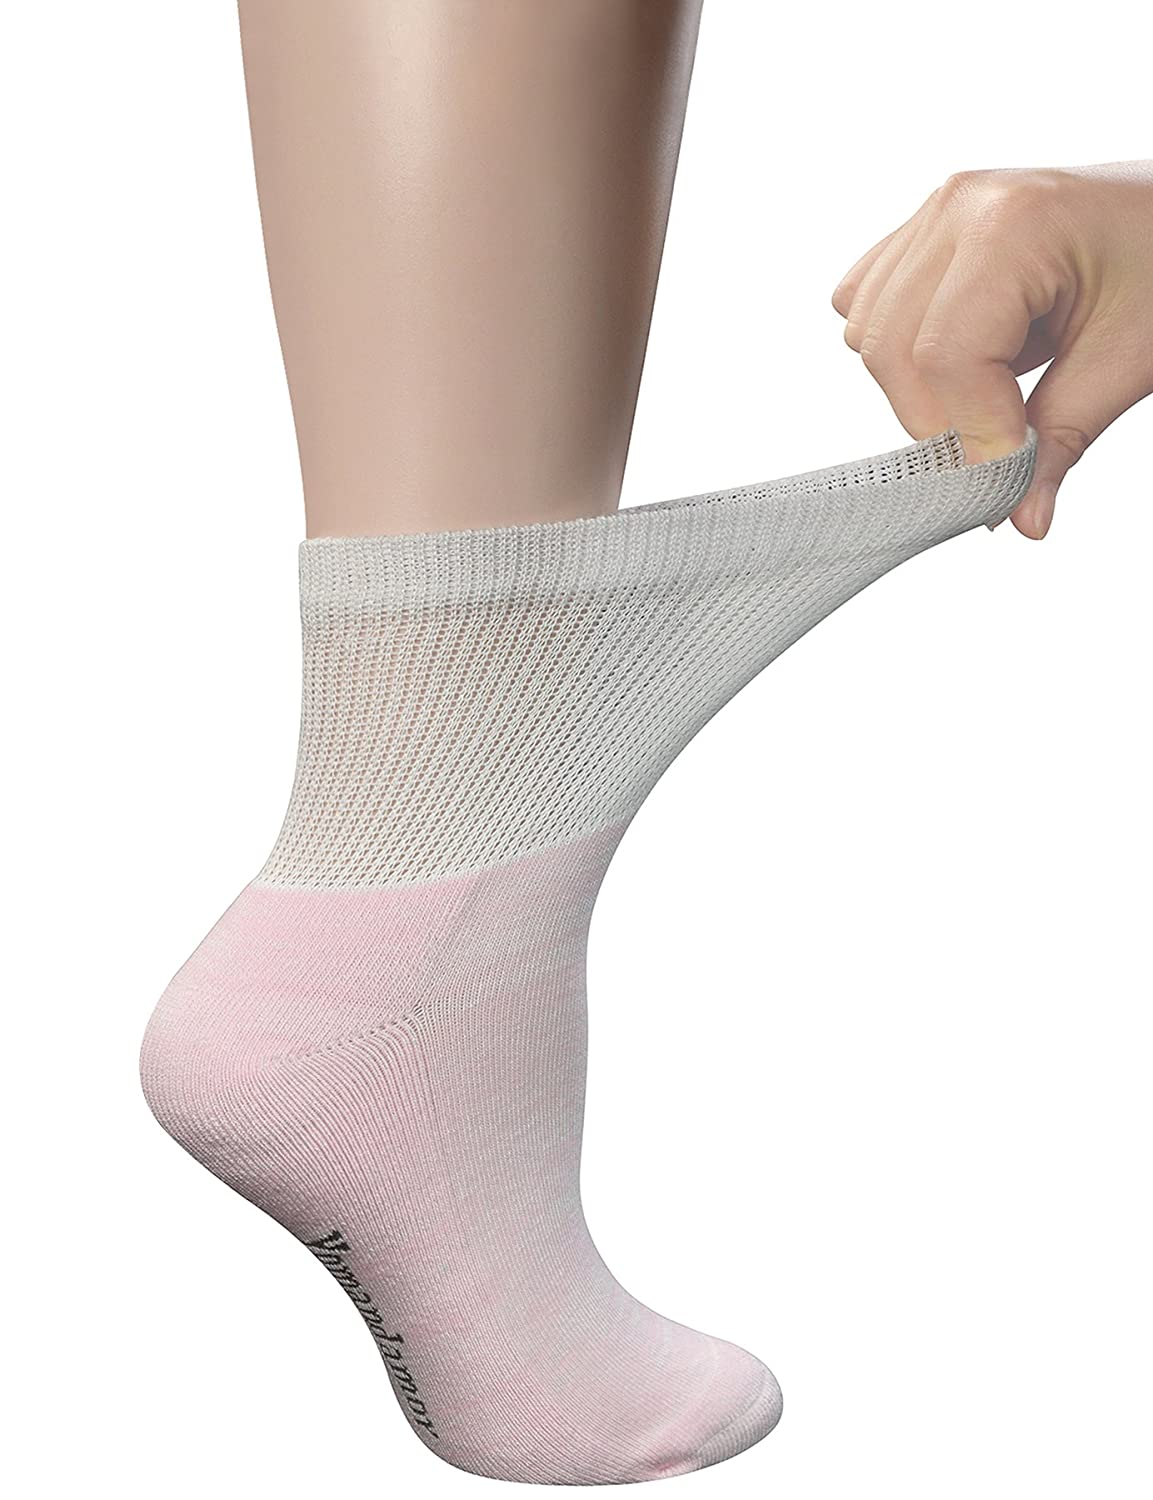 518e5c0e46 Yomandamor Women's 6 Pairs Bamboo Ankle Socks with Non-Binding Top And  Cushion Sole, L Size(Socks Size:9-11) at Amazon Women's Clothing store: